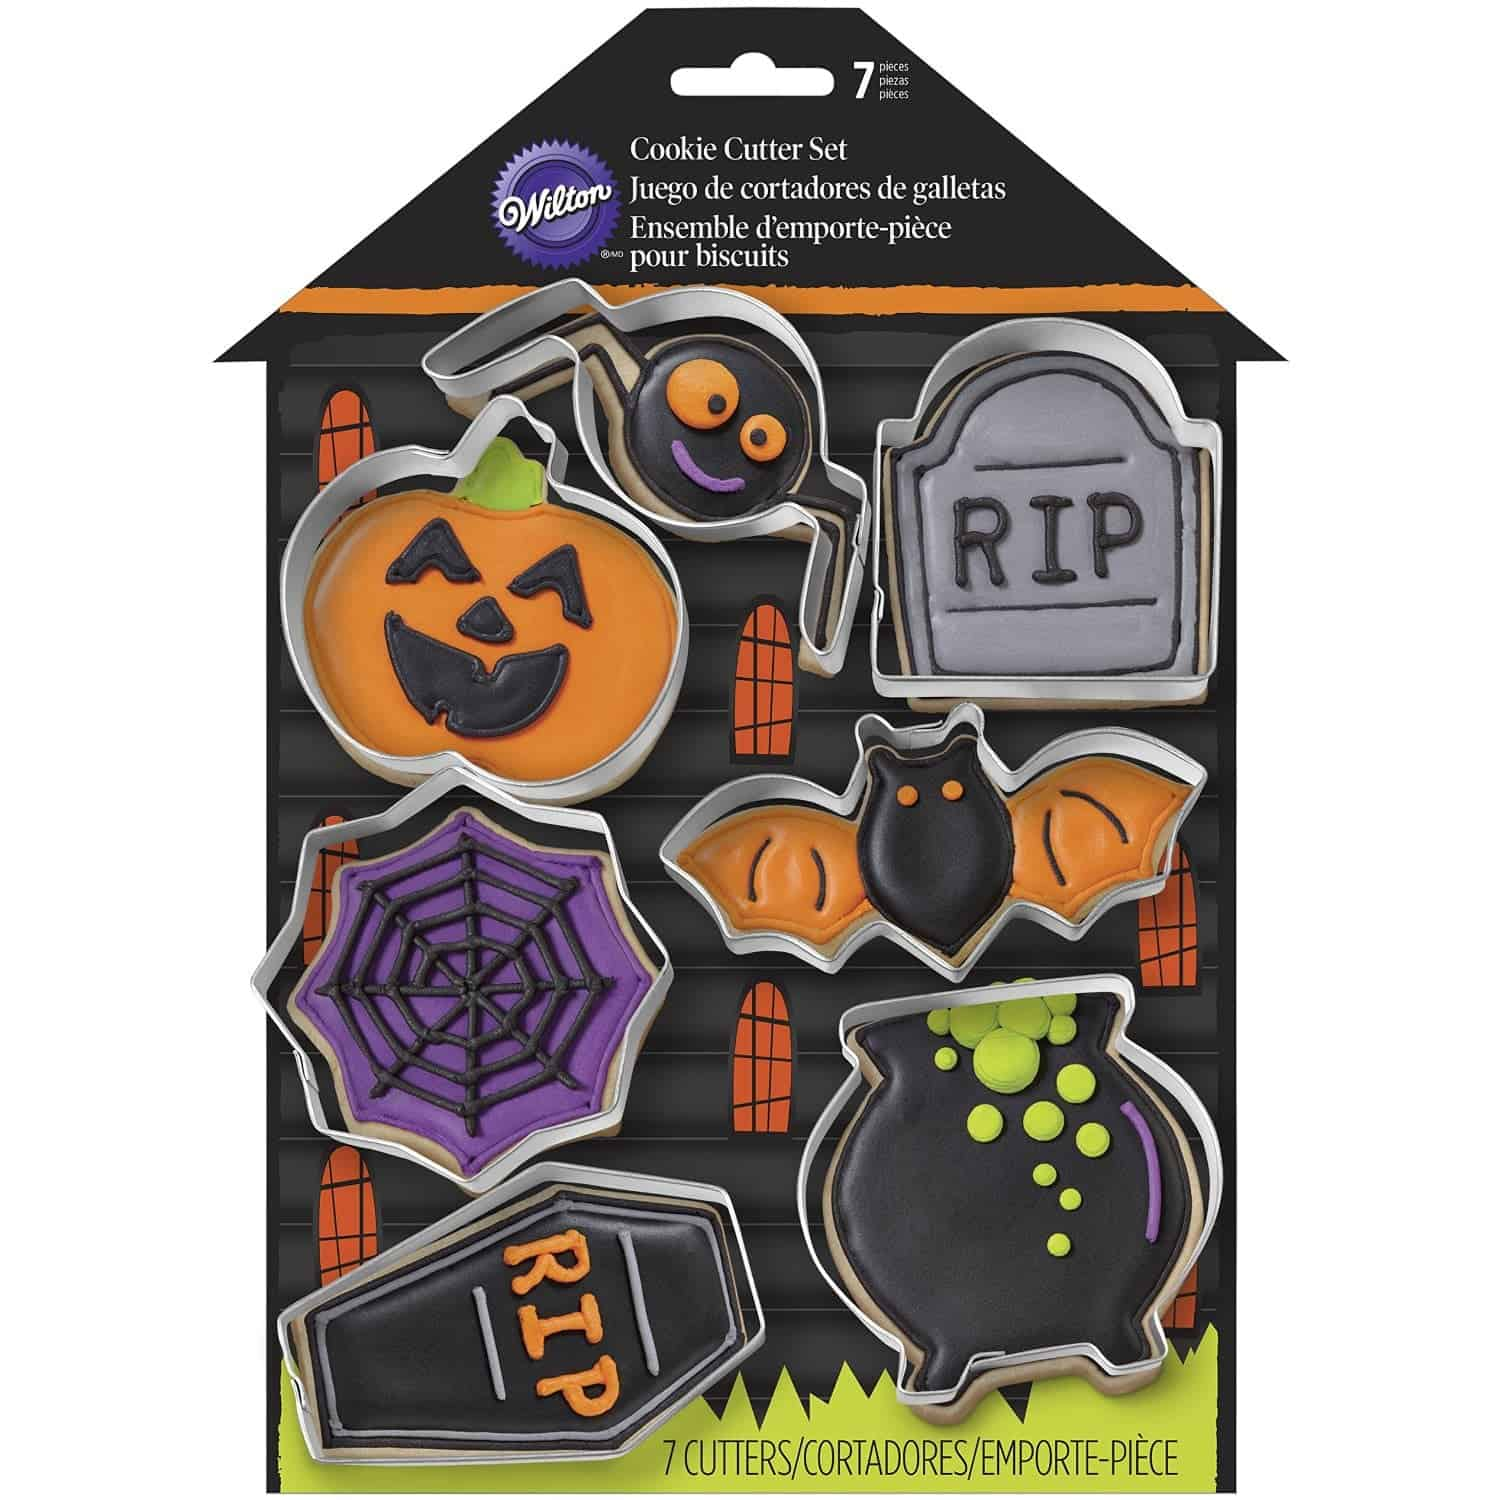 10+ Great Halloween Treats to Give out that Aren't Candy: Cookie Cutters| www.thepinningmama.com